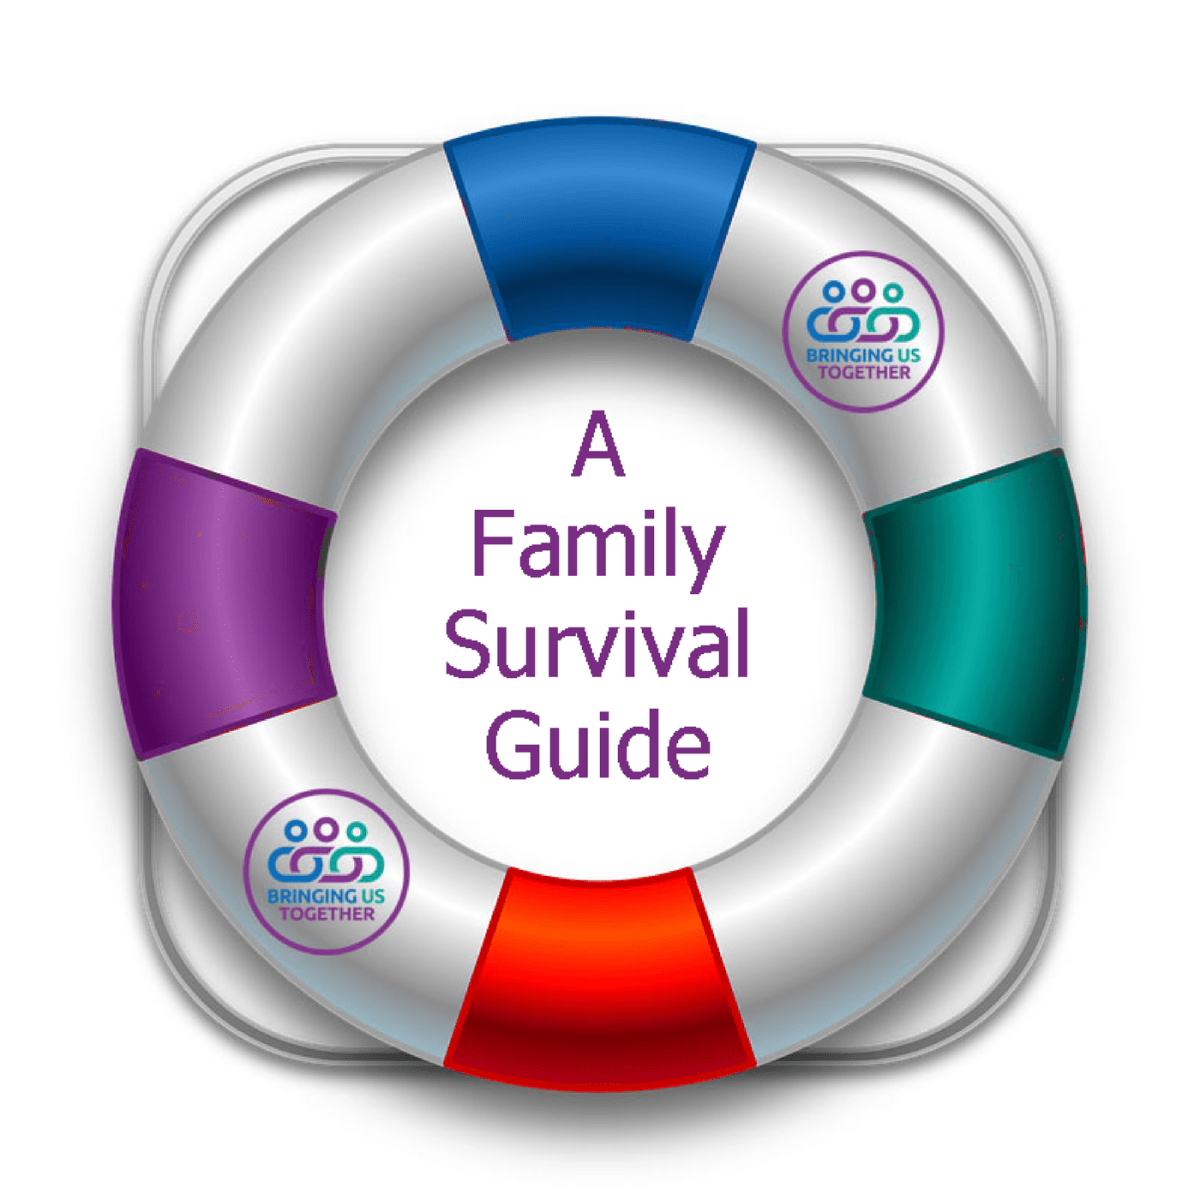 A Family Survival Guide - Care and Treatment Reviews (CTRs)